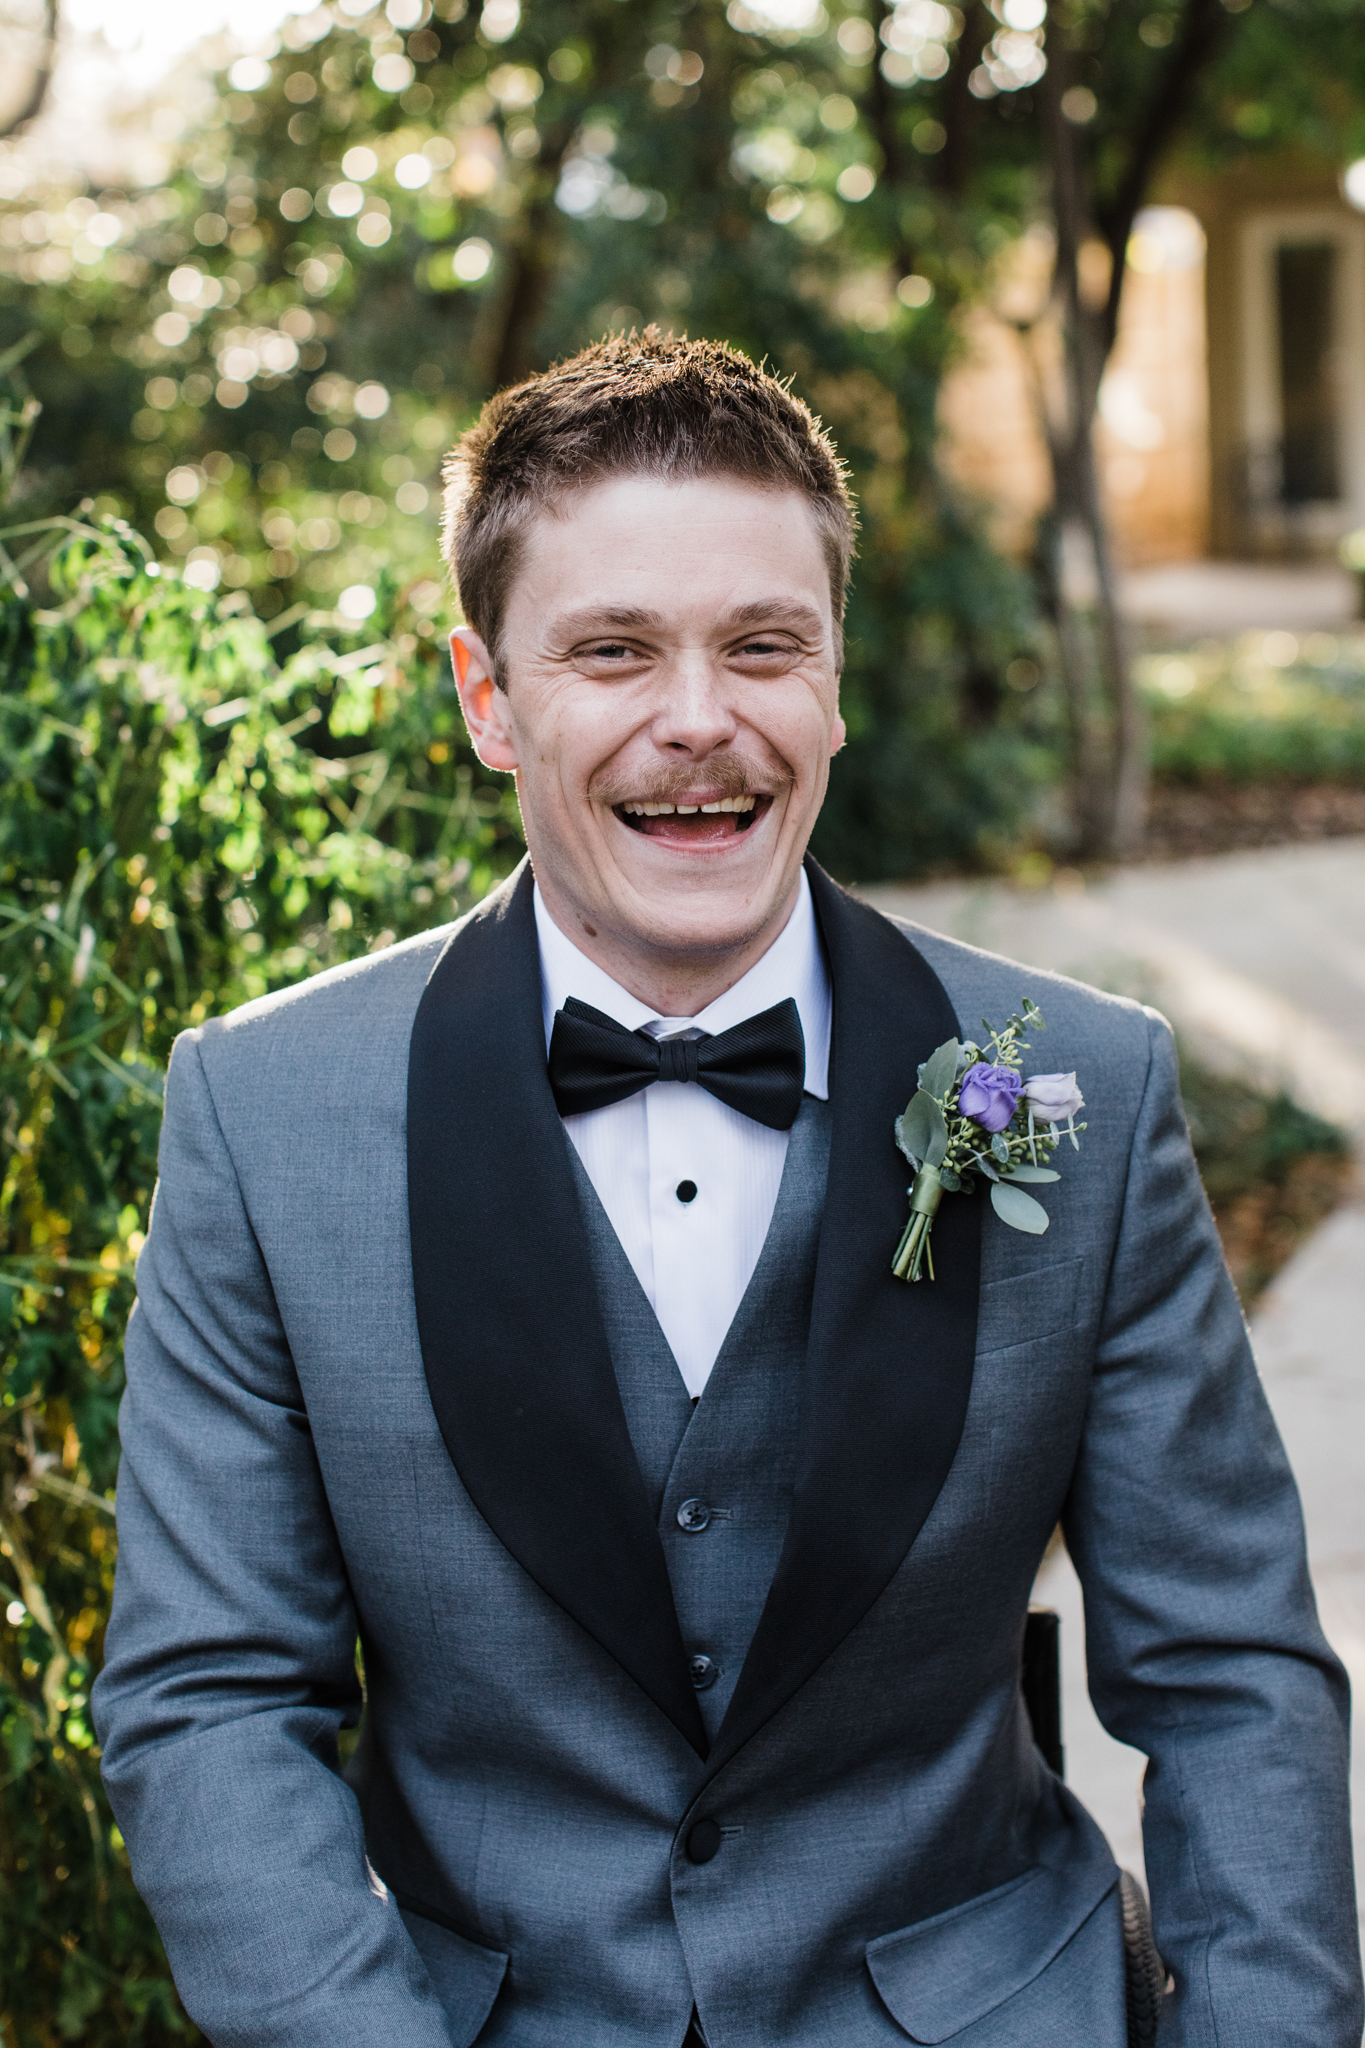 groom laughing portrait